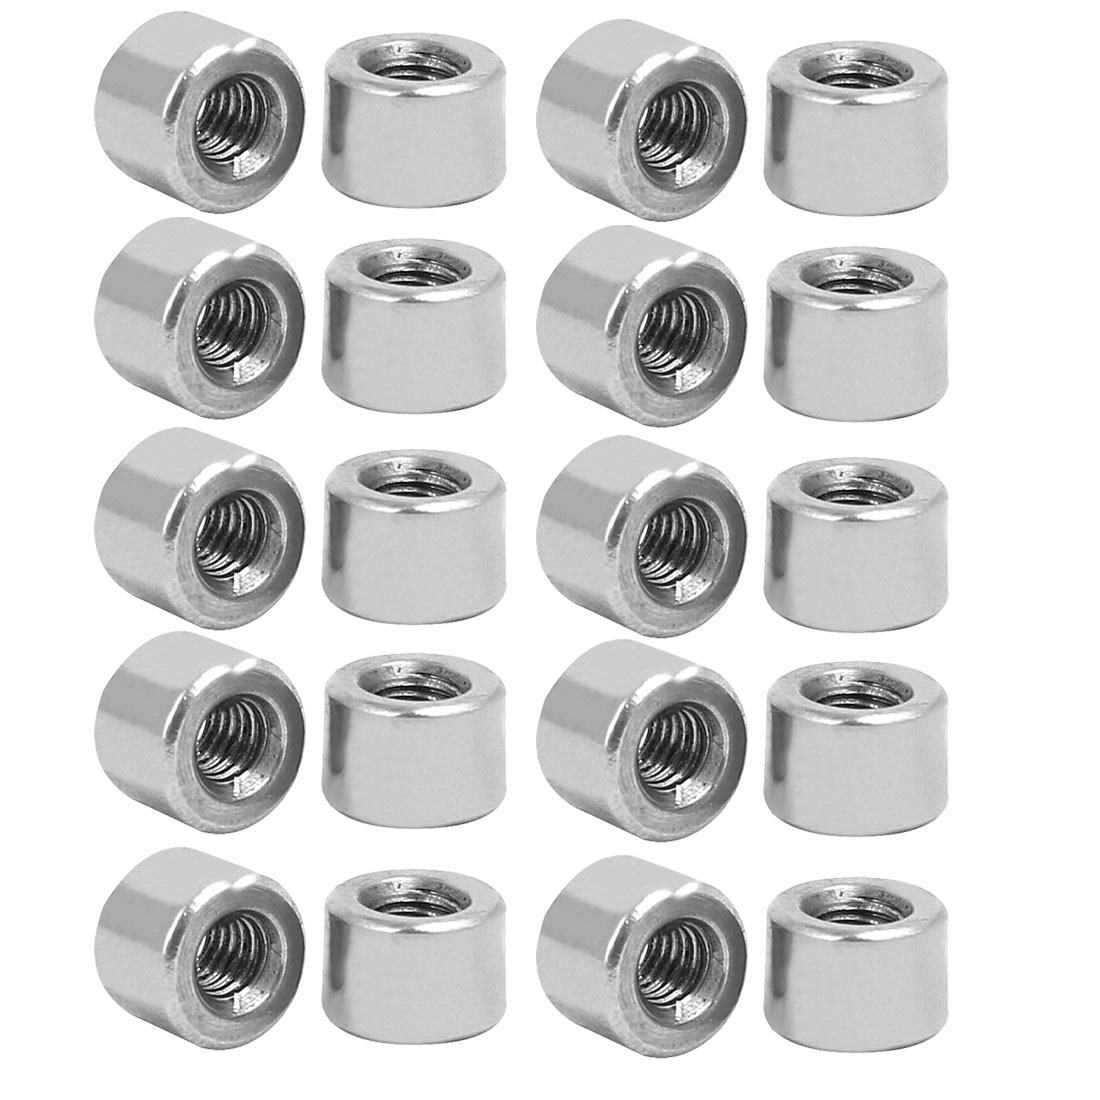 M3x6mmx4.2mm Rod Bar Stud Round Coupling Connector Nuts 10pcs